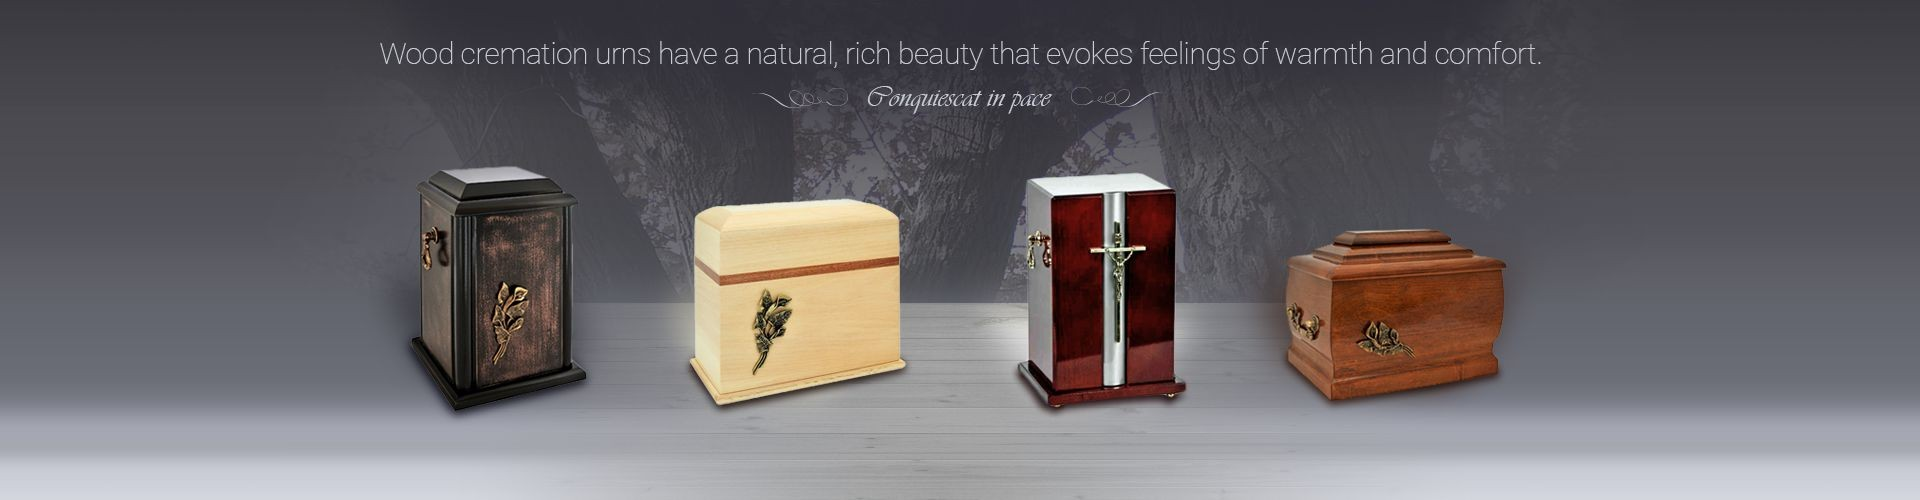 Wood cremation urns have a natural, rich beauty that evokes feelings of warmth and comfort